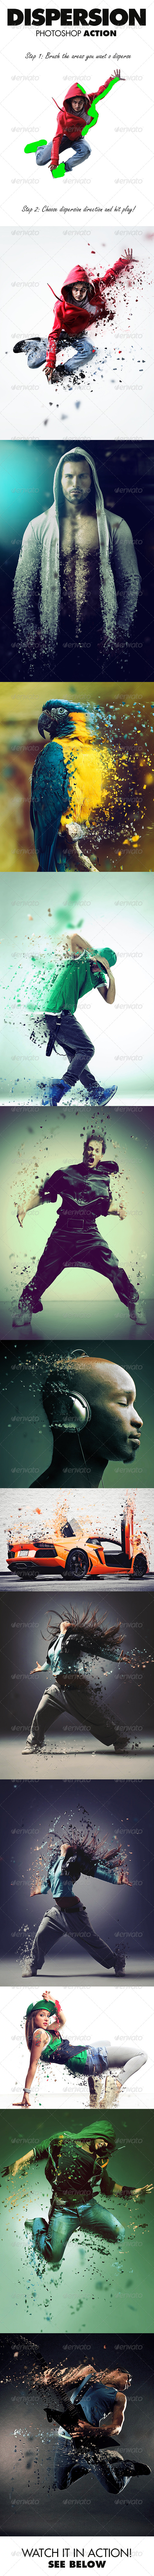 GraphicRiver Dispersion Photoshop Action 7905698